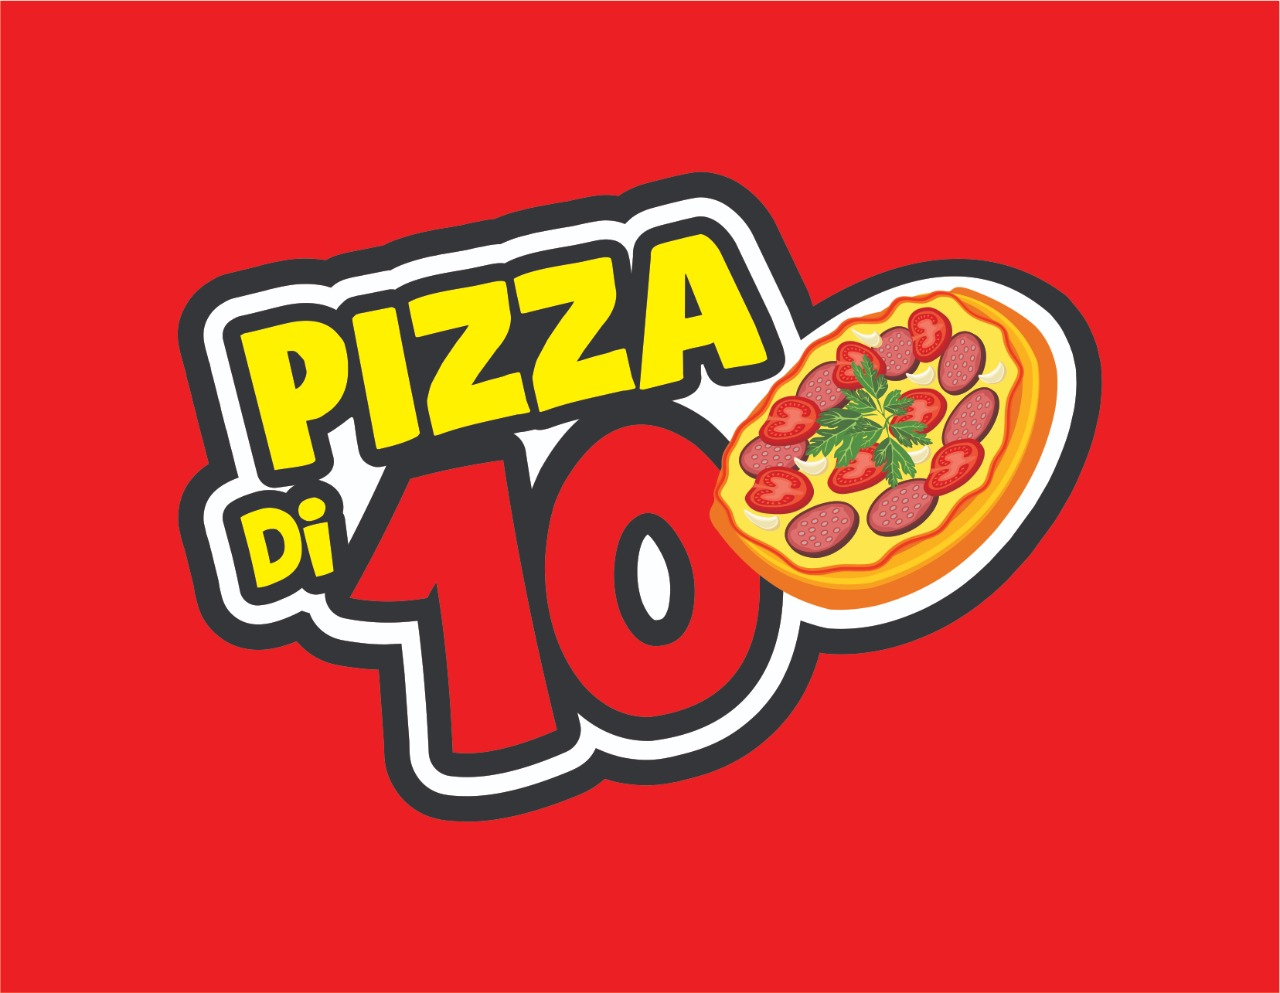 Logo-Pizzaria - Pizza di 10